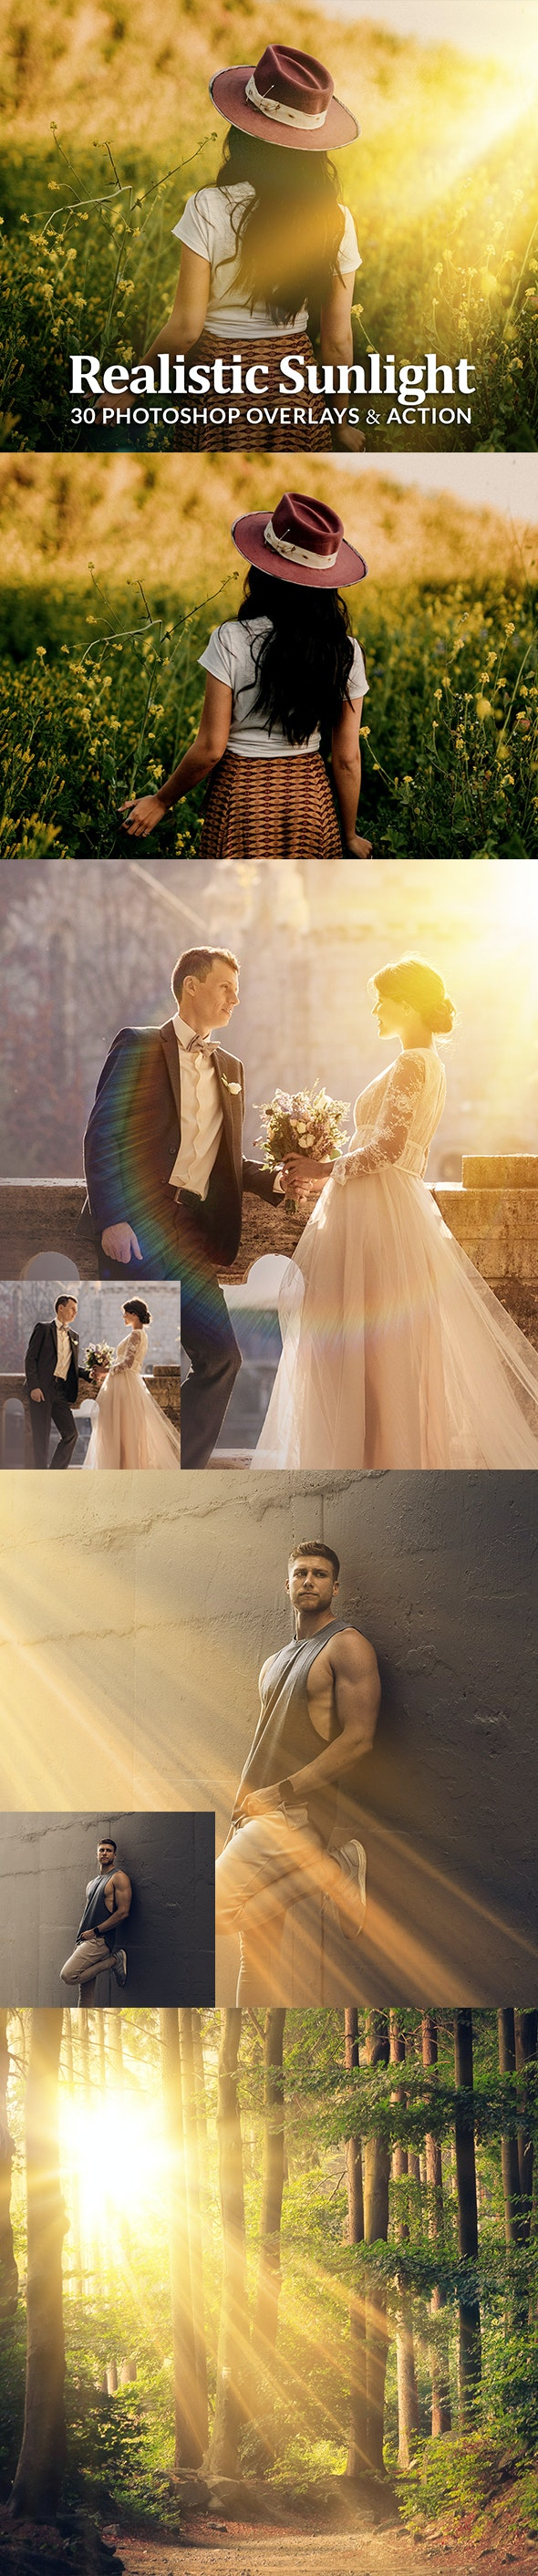 Realistic Sun Light Photoshop Overlays Action - Photo Effects Actions